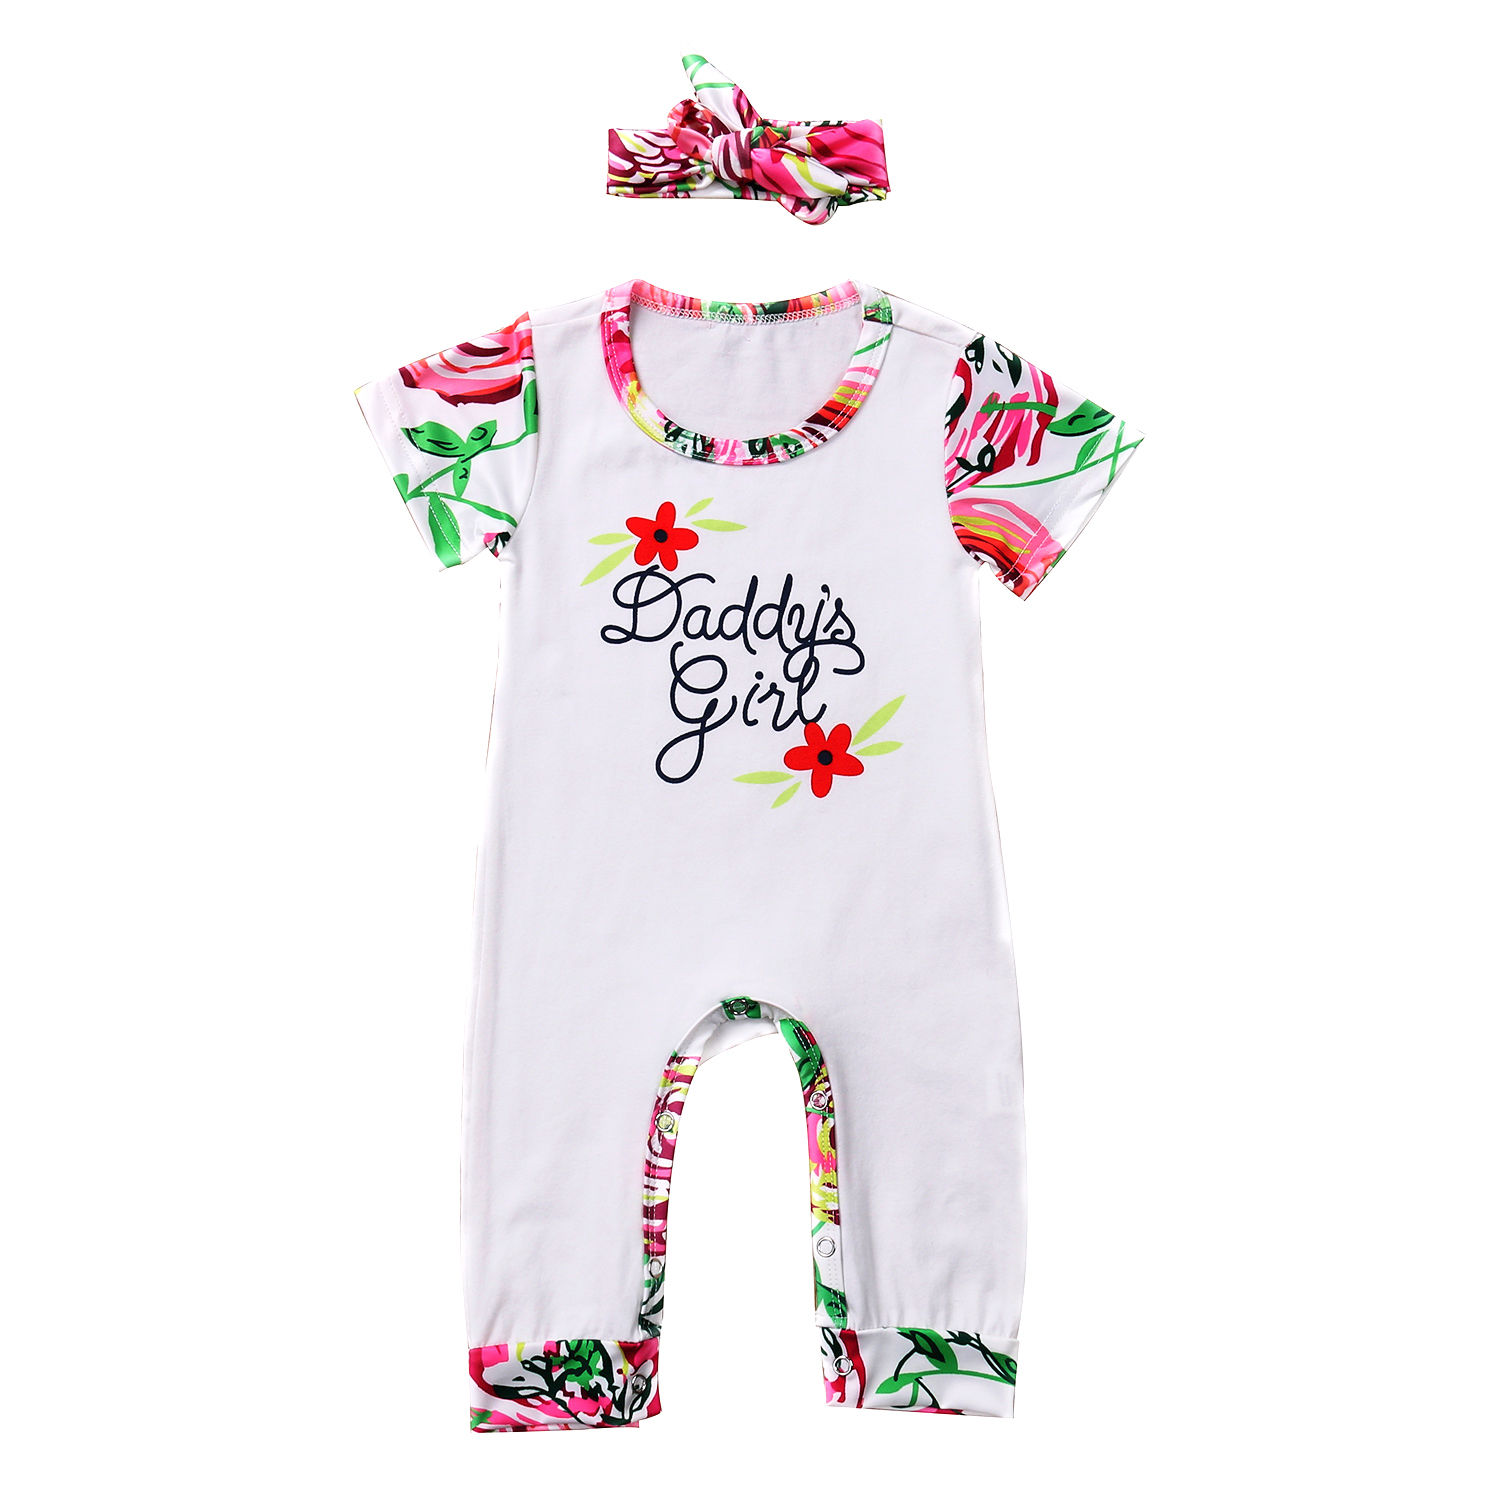 Adorable Baby Daddy Girl Baby Girls Jumpers Clothes Short Sleeve Floral Romper Playsuit Sleepsuit +Headband Outfits 0-24M